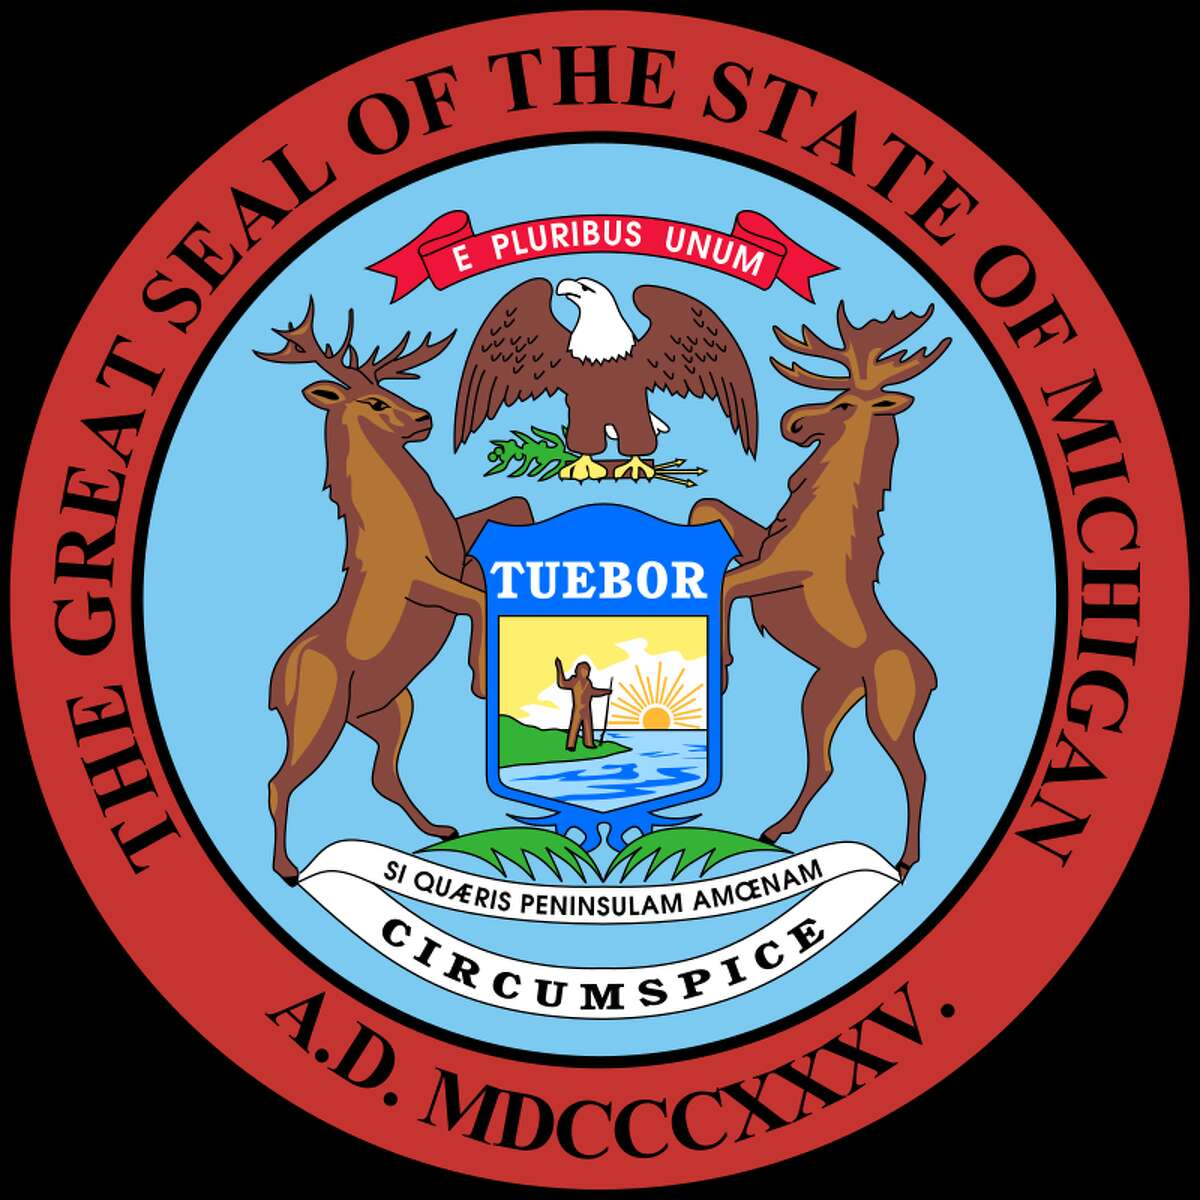 The Great Seal of the State of Michigan